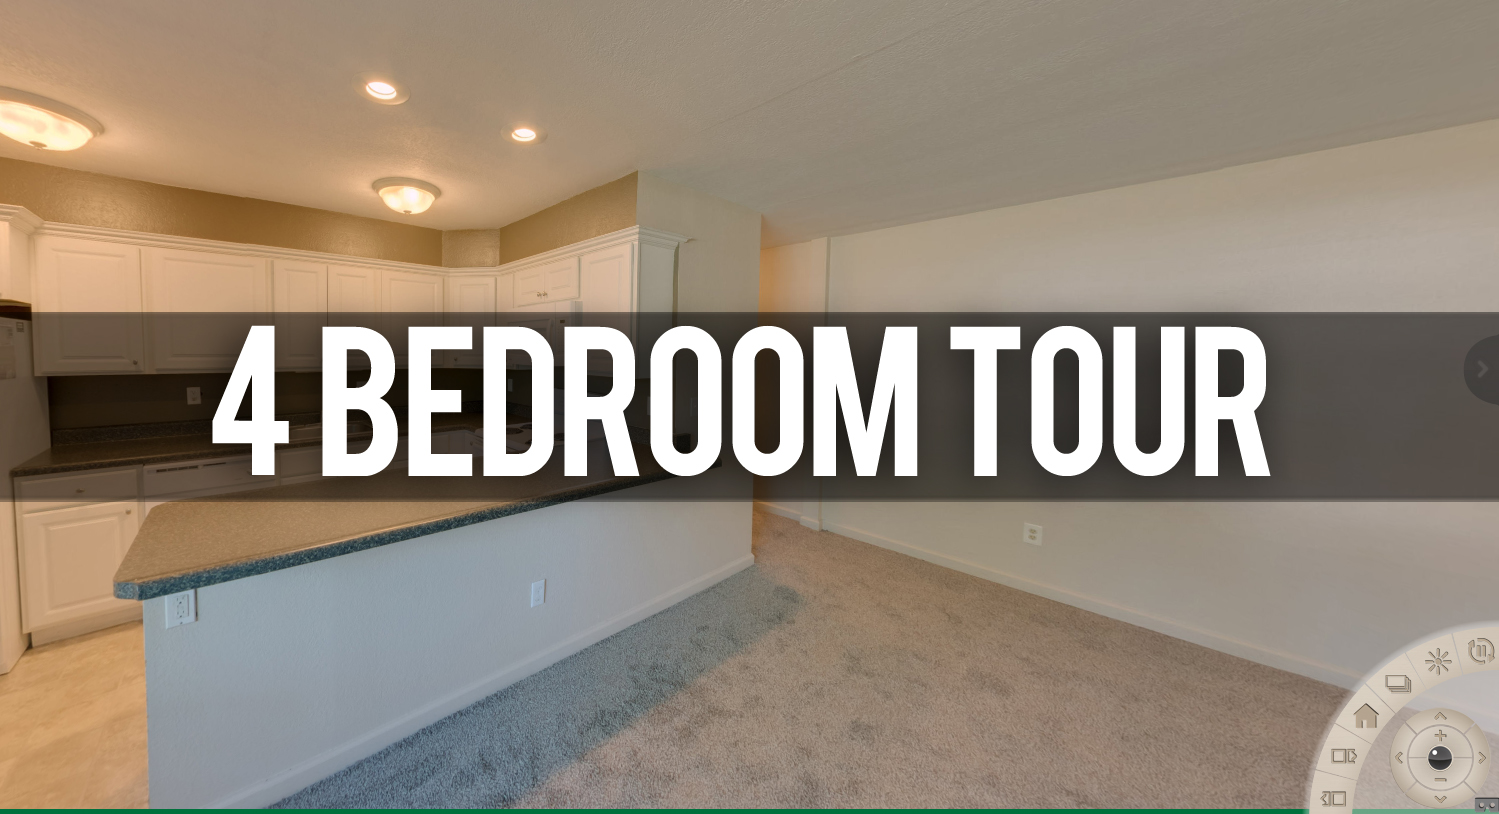 4 Bedroom Tour at Glenwood Apartments in East Lansing, MI